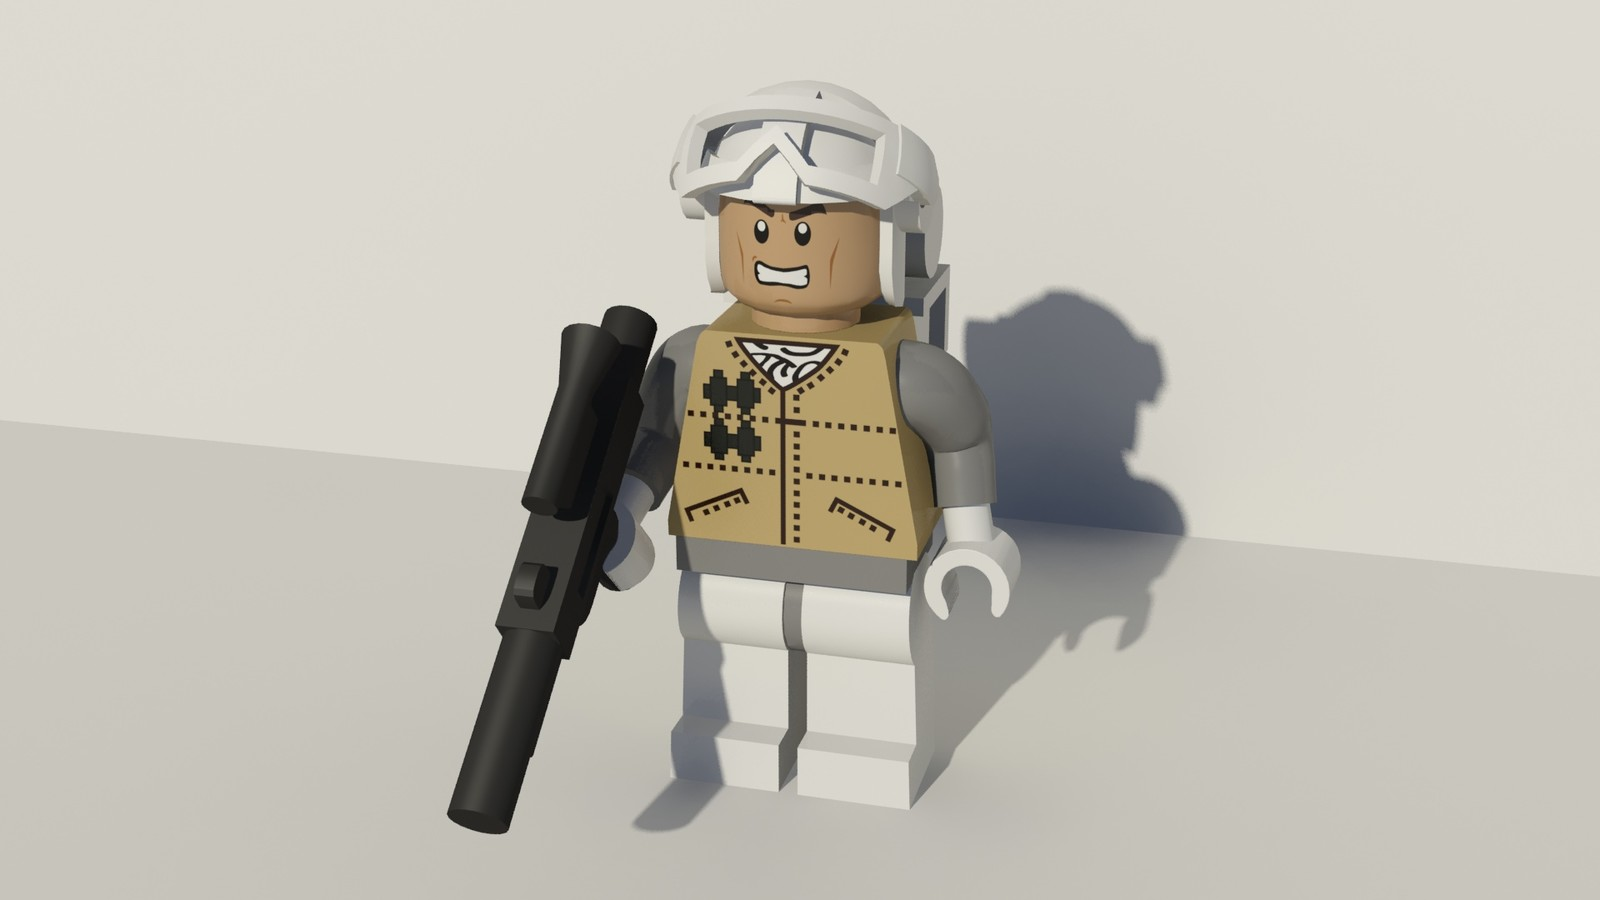 Lego Star Wars Hoth Character